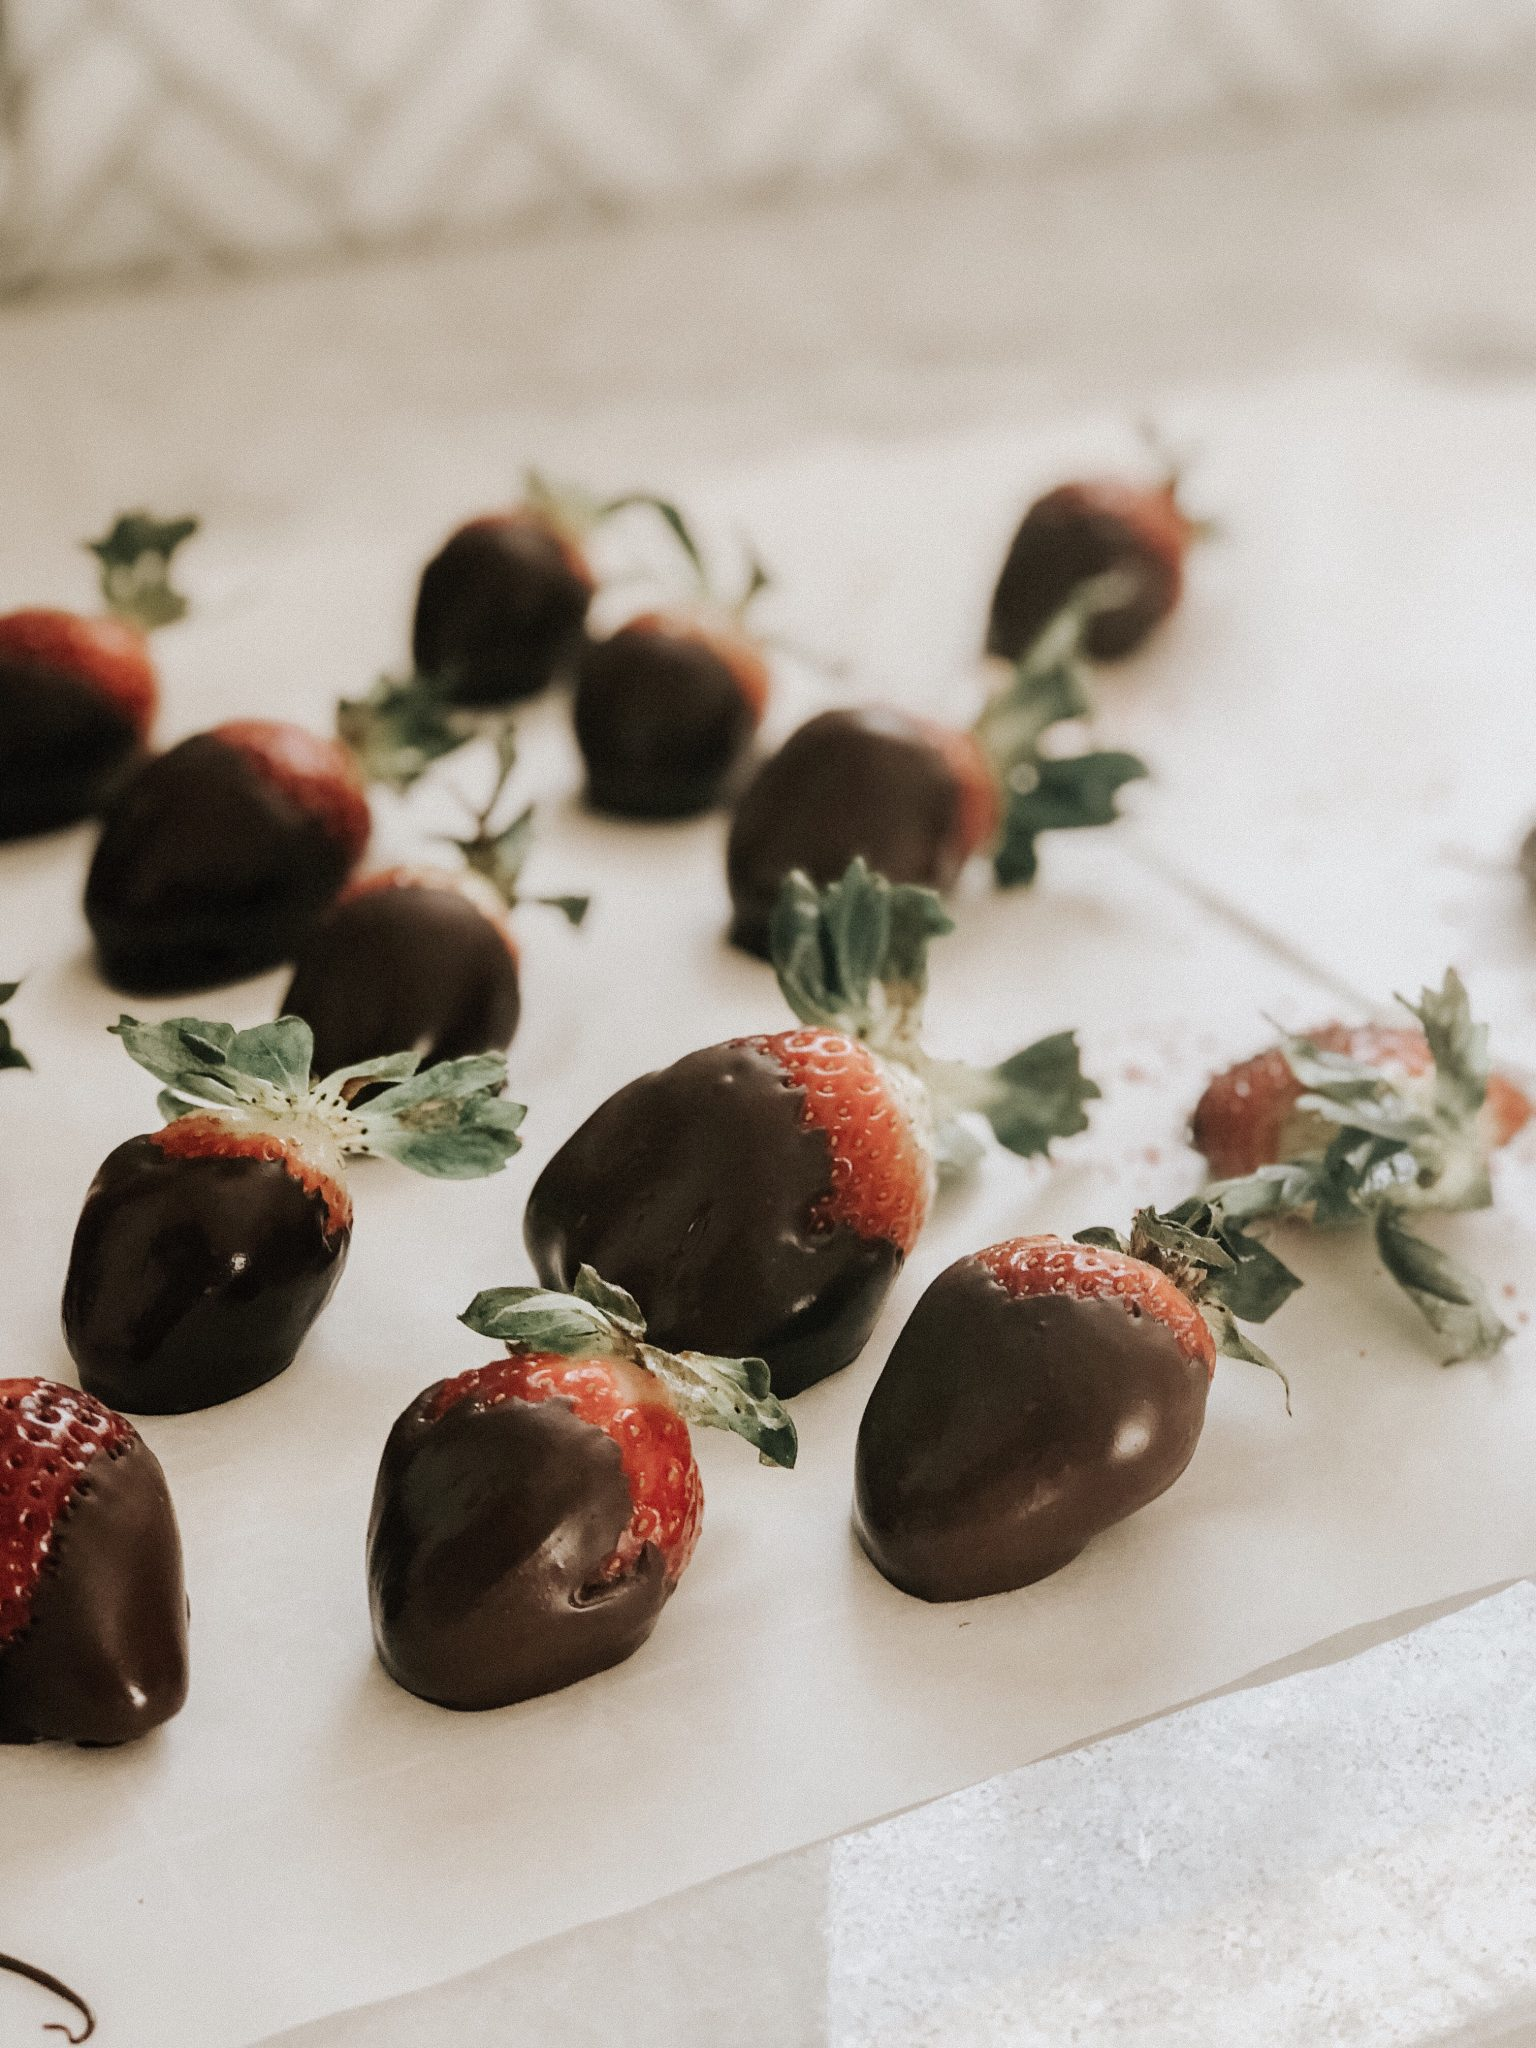 Valentines treat | Daily Splendor #valentines #chocolate #strawberries